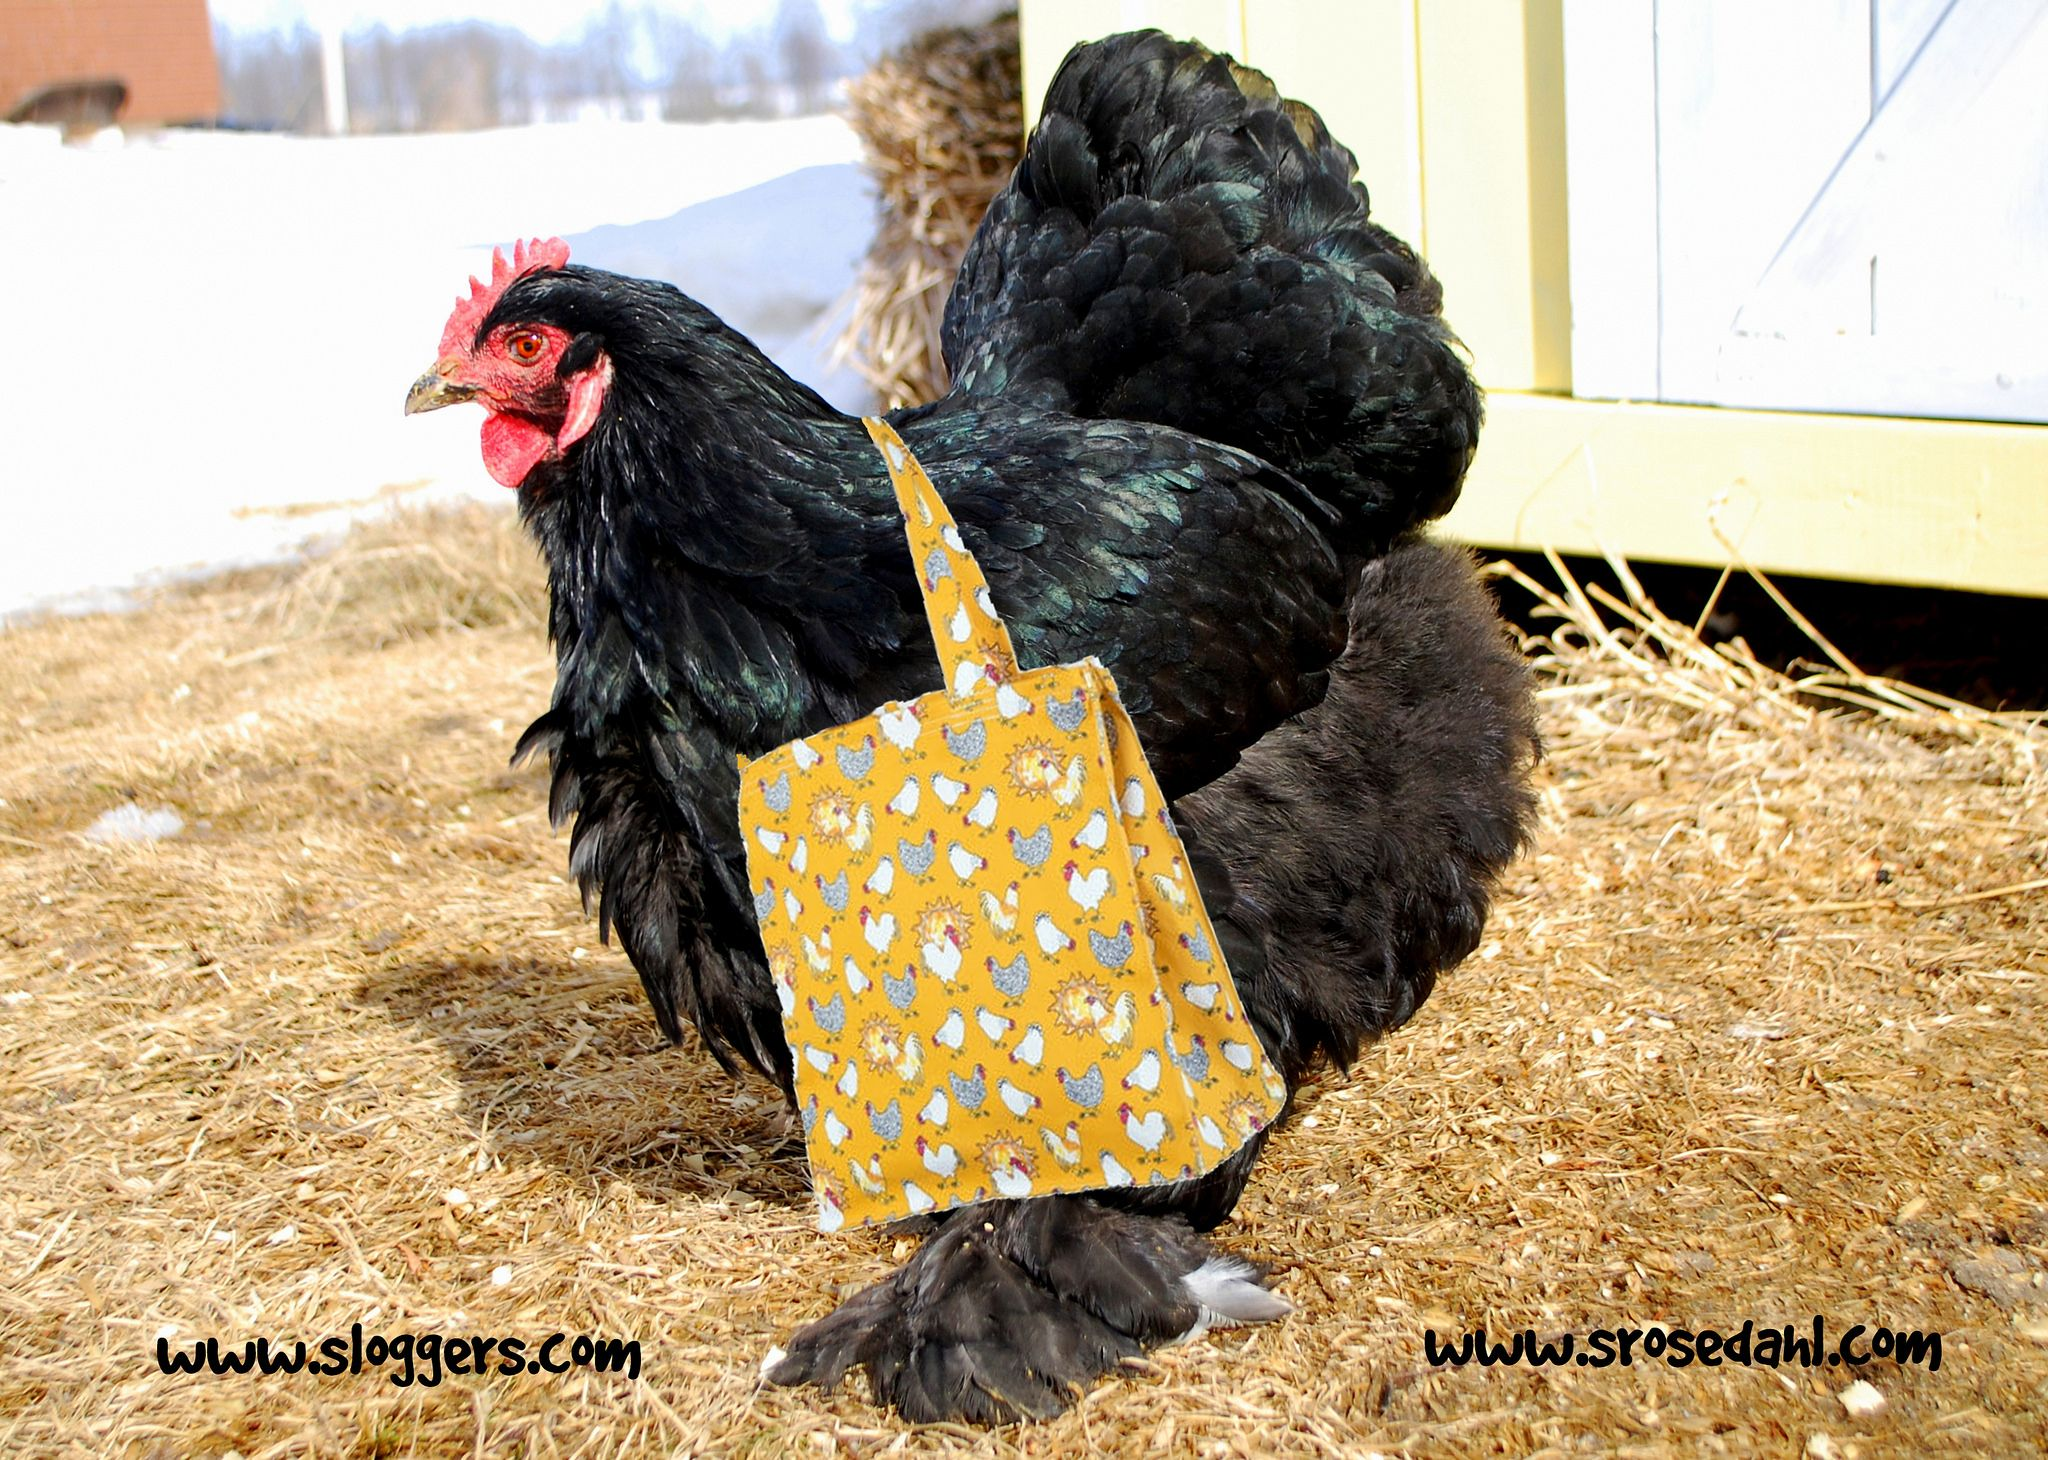 An with Sloggers Tote featuring my chicken art. Ready for spring!  www.sloggers.com  www.srosedahl.com